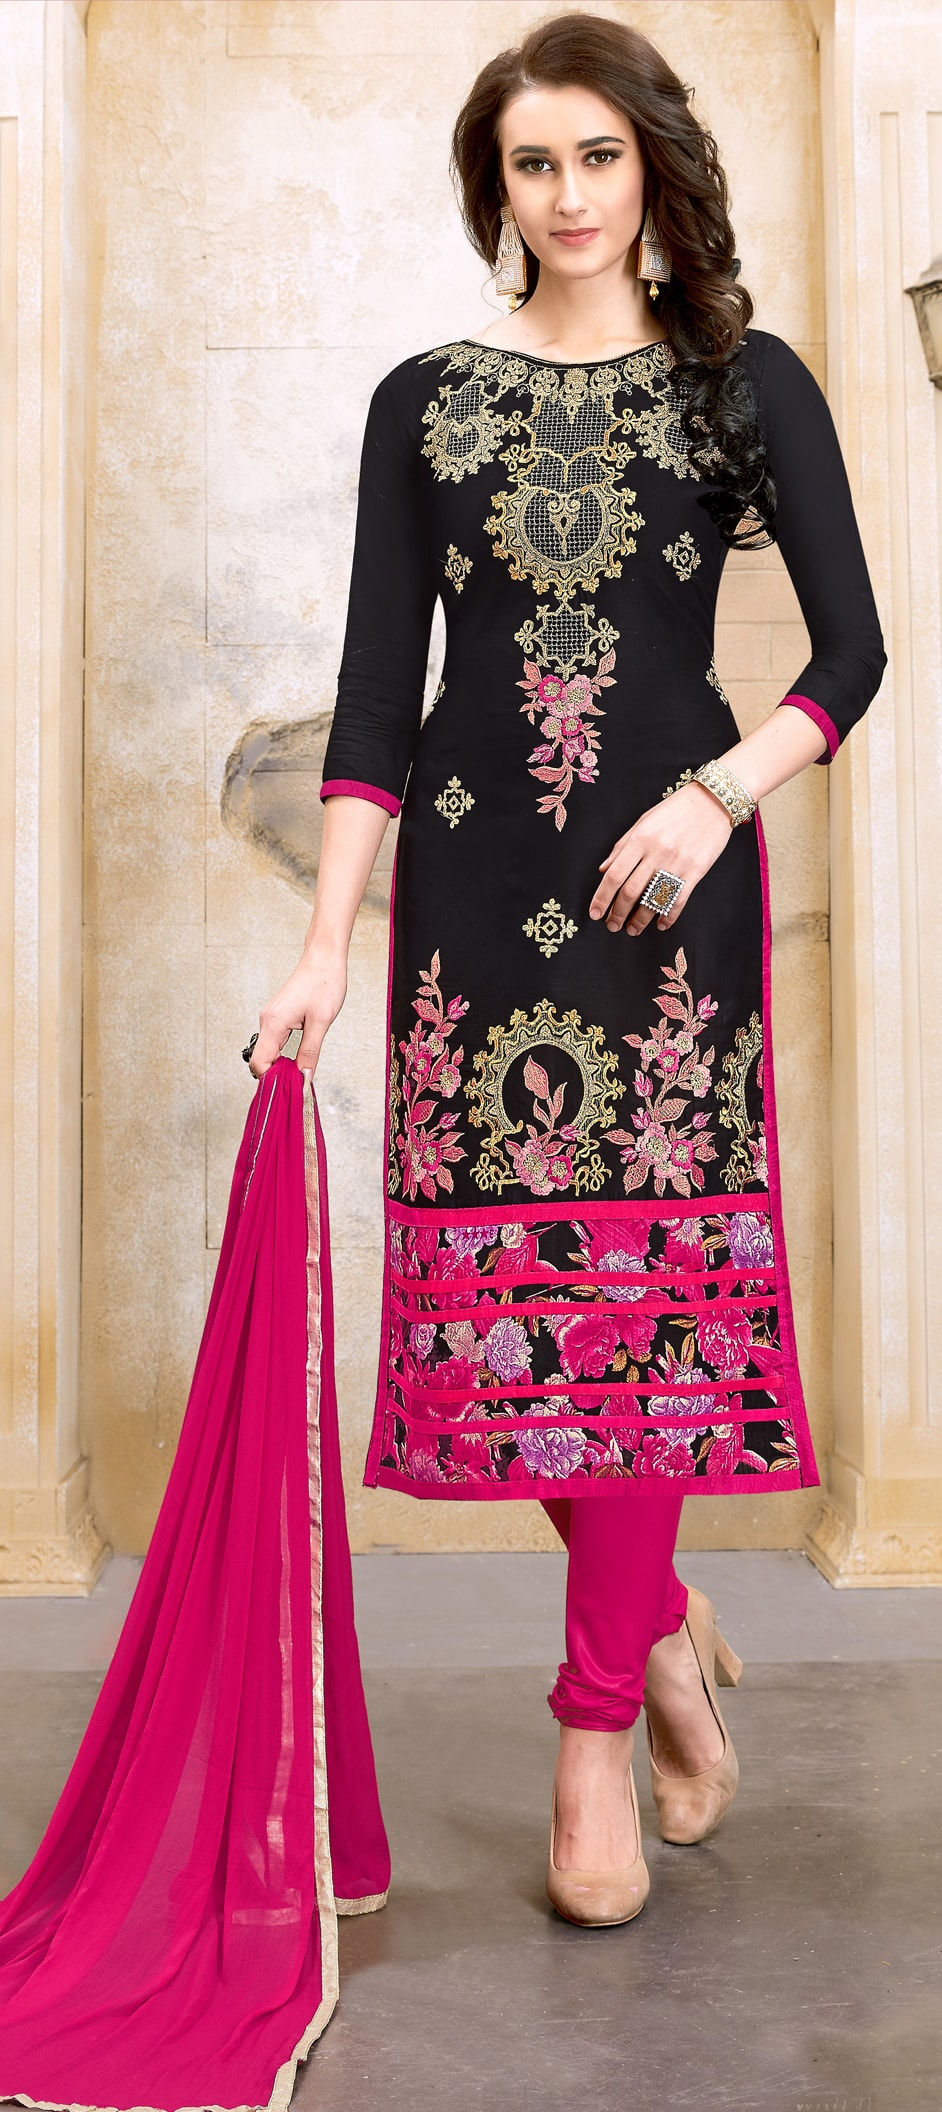 Cotton Bollywood Salwar Kameez in Black and Grey with Resham work